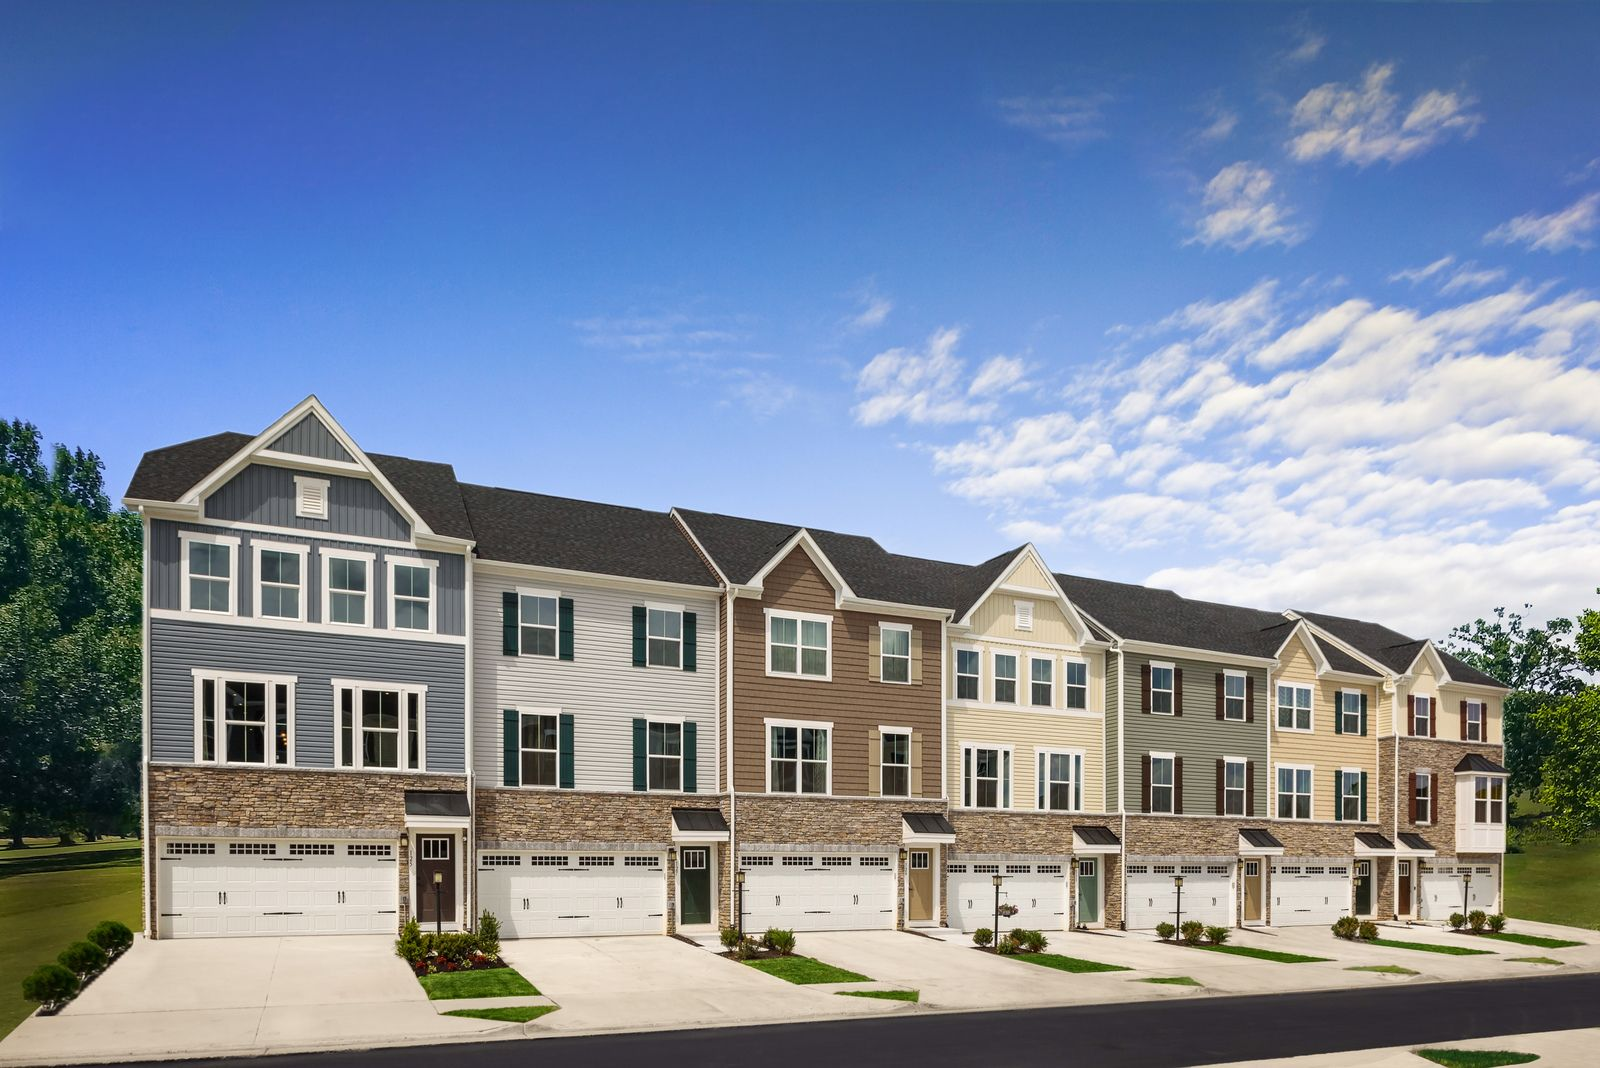 Welcome Home to Regents Glen:Live in one of York's most sought after communities.Schedule your visit today!